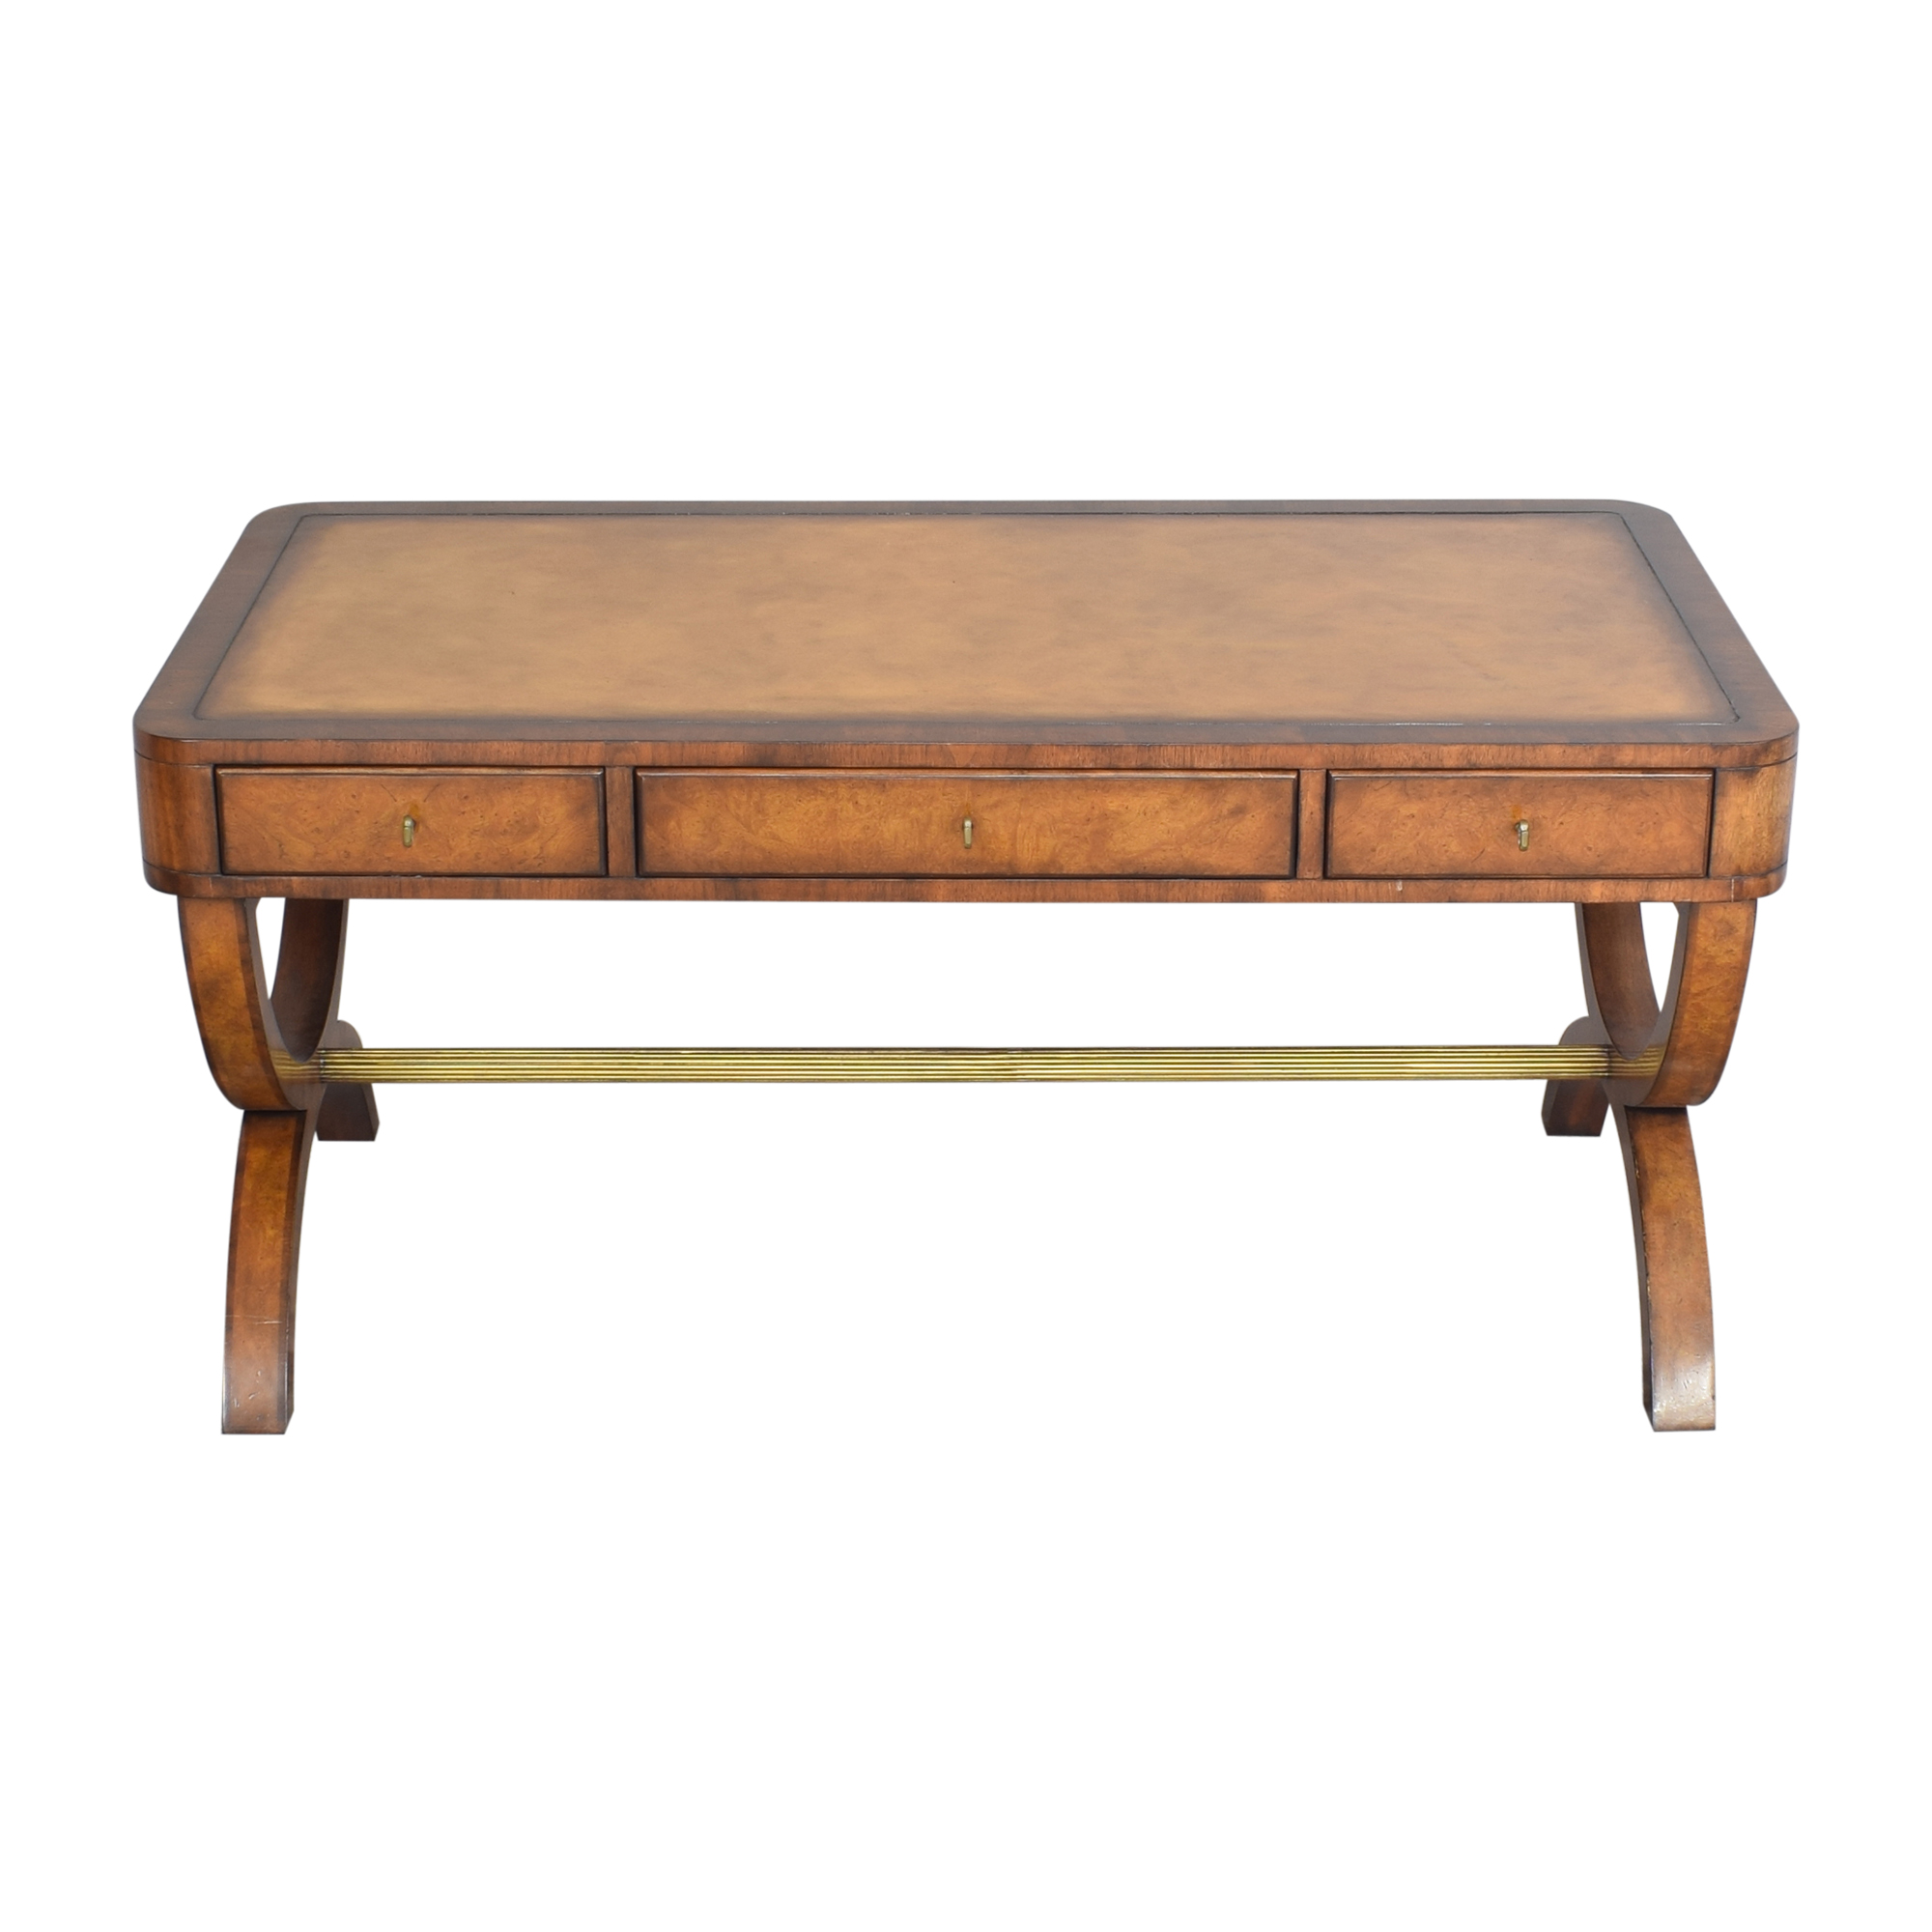 Lillian August Lillian August for Hickory White Piers Writing Desk brown